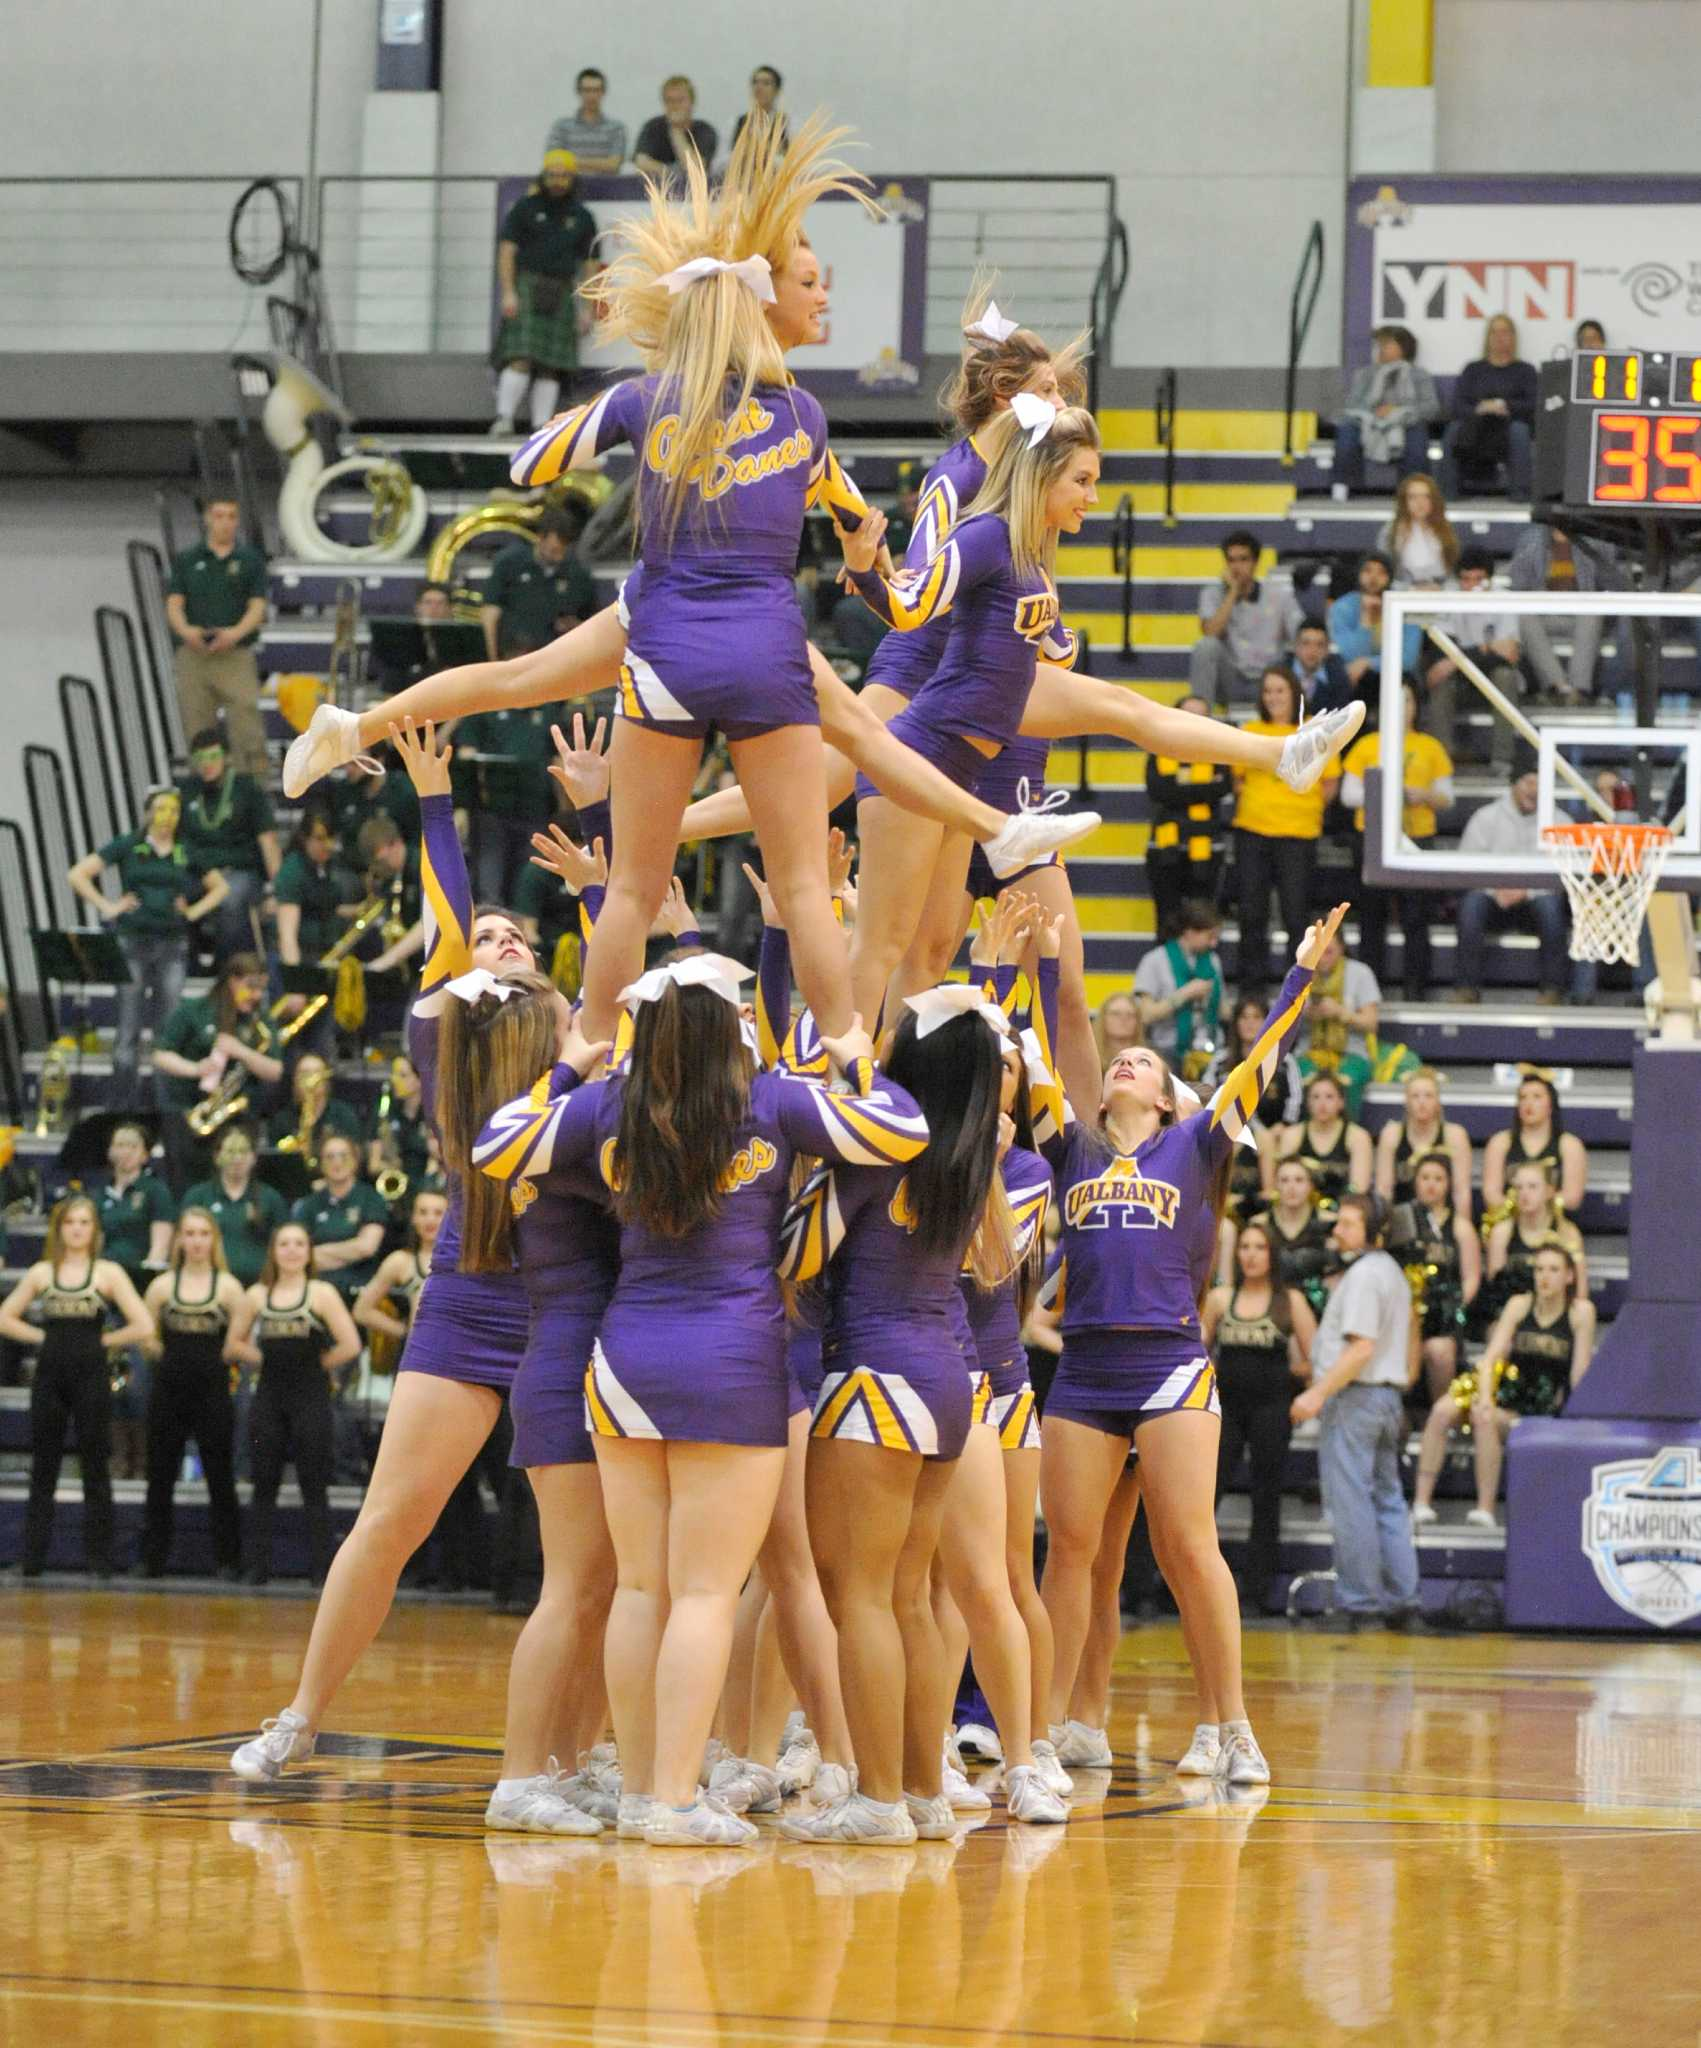 The cheerleaders of March Madness - Times Union